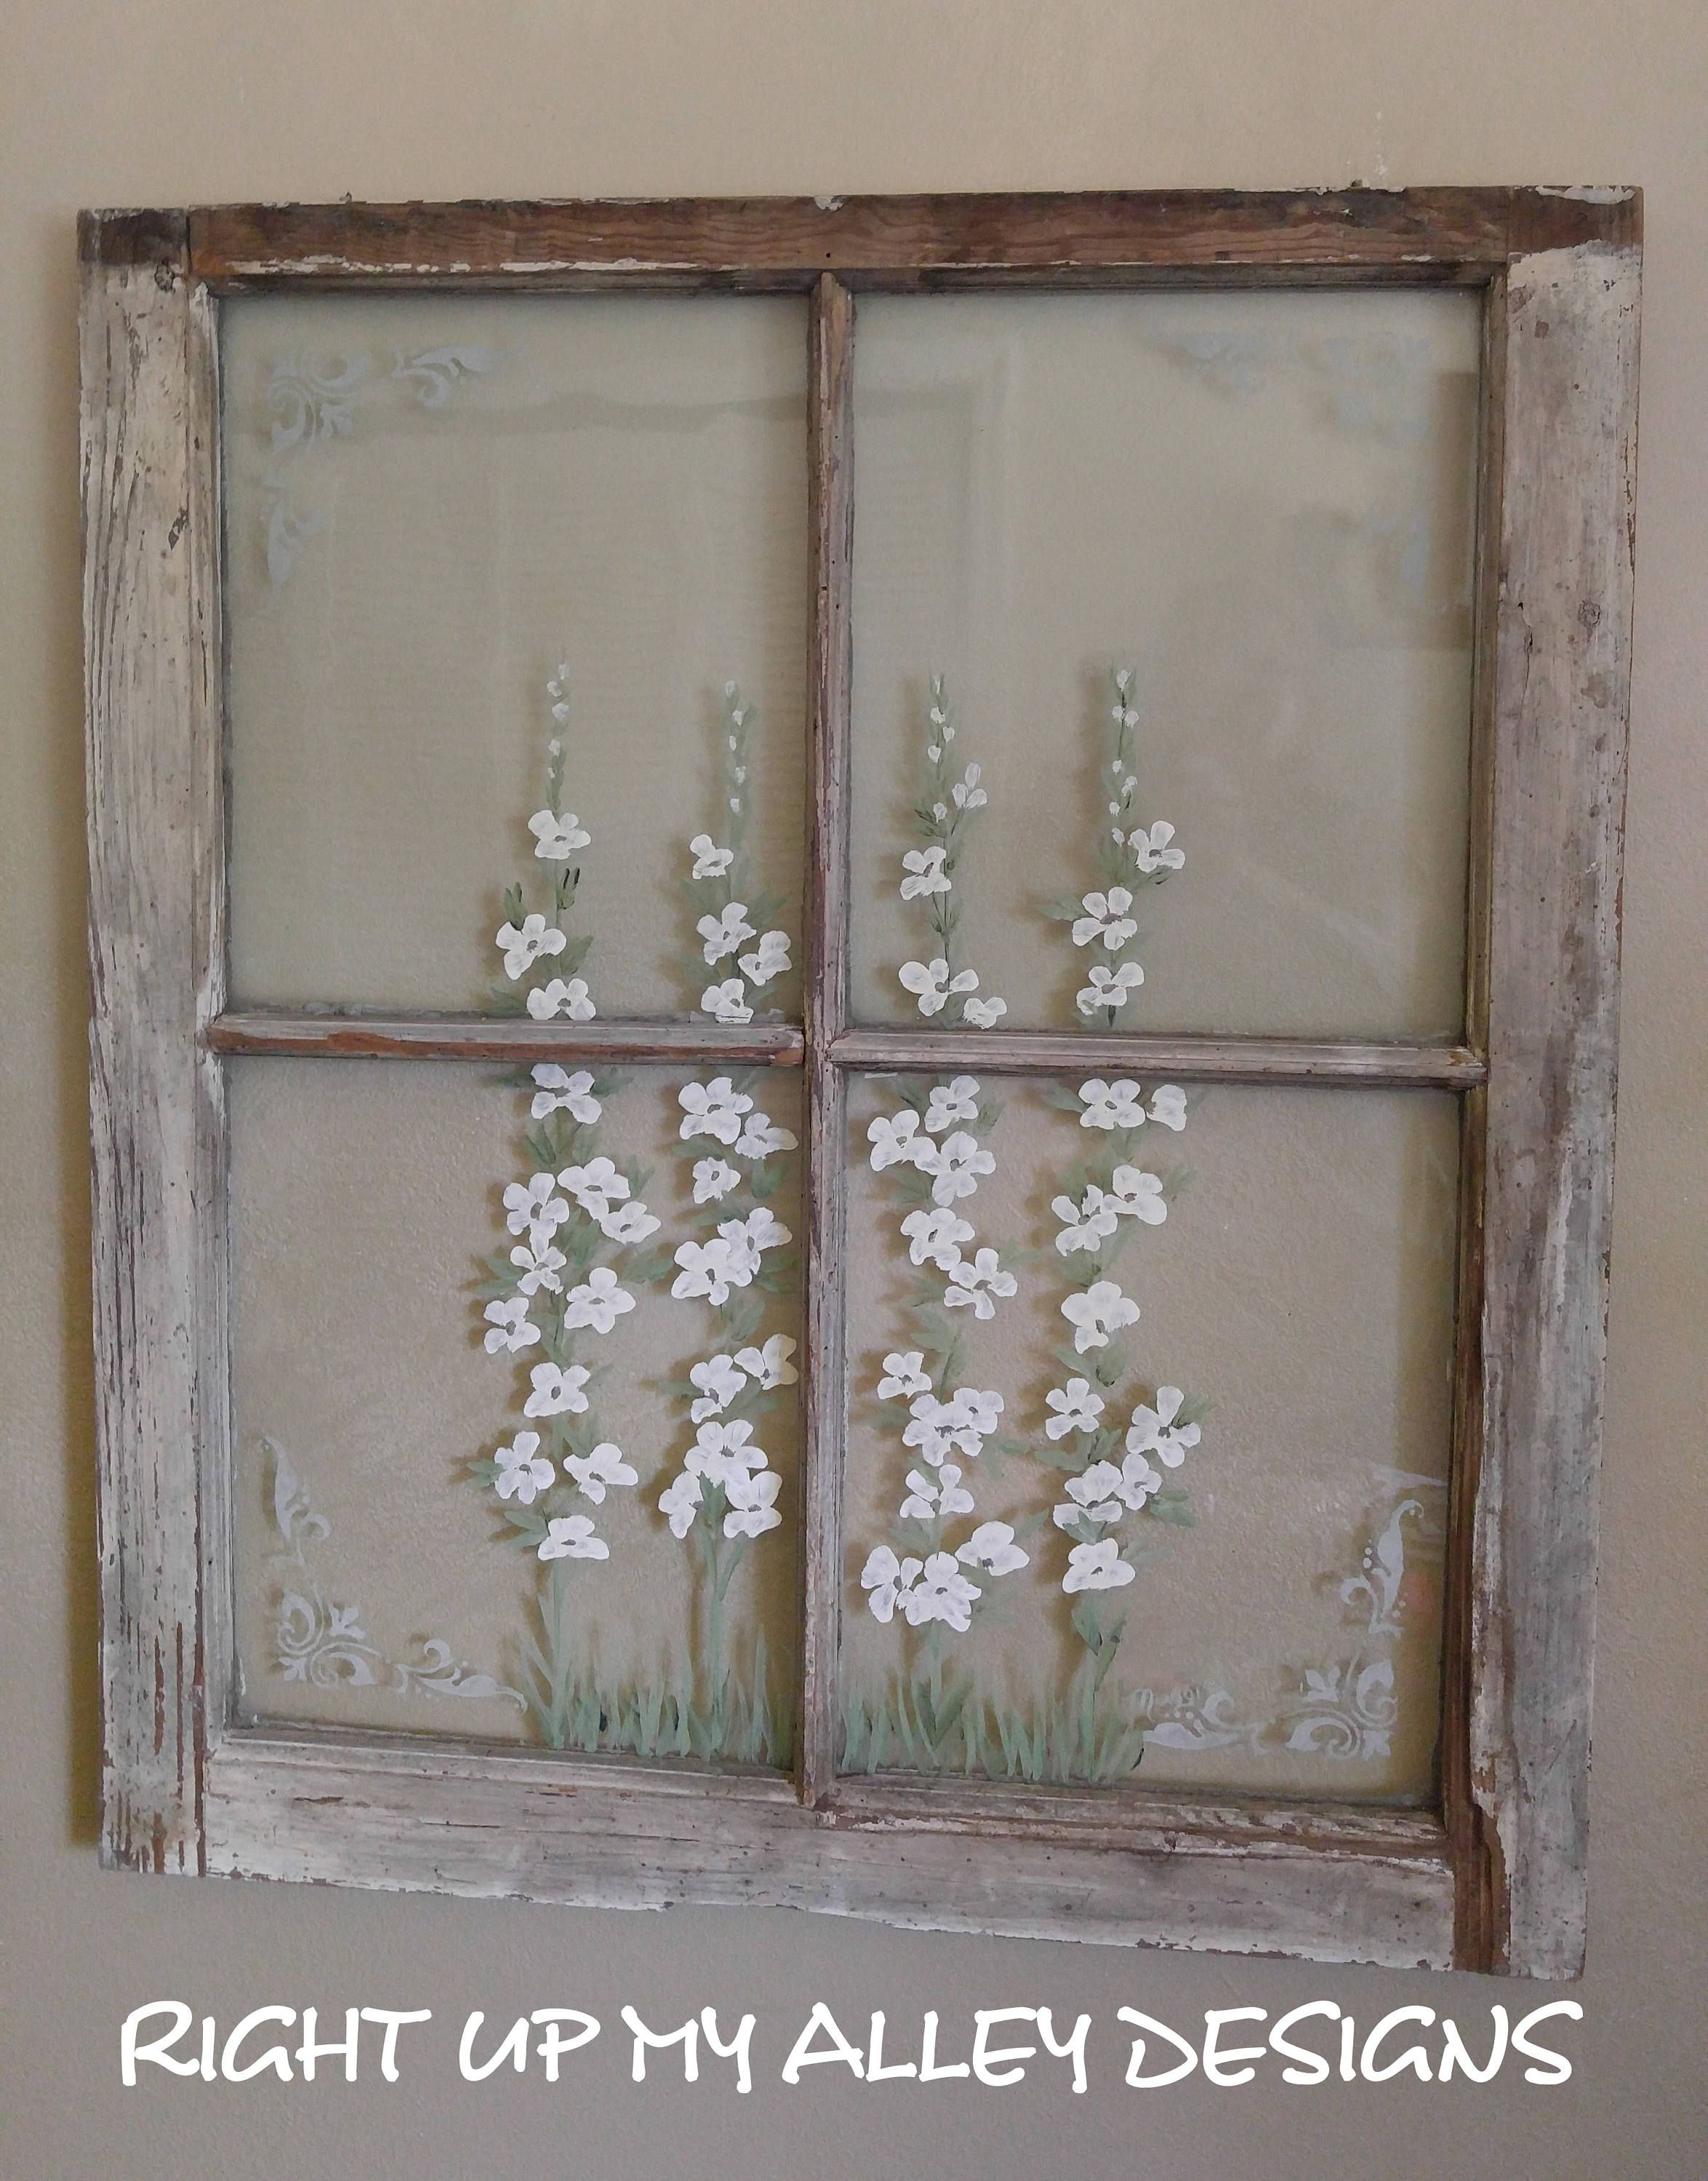 Old painted window white flower artfrench stencil window artantique window wall artold window decorwindow pane artrepurposed window by